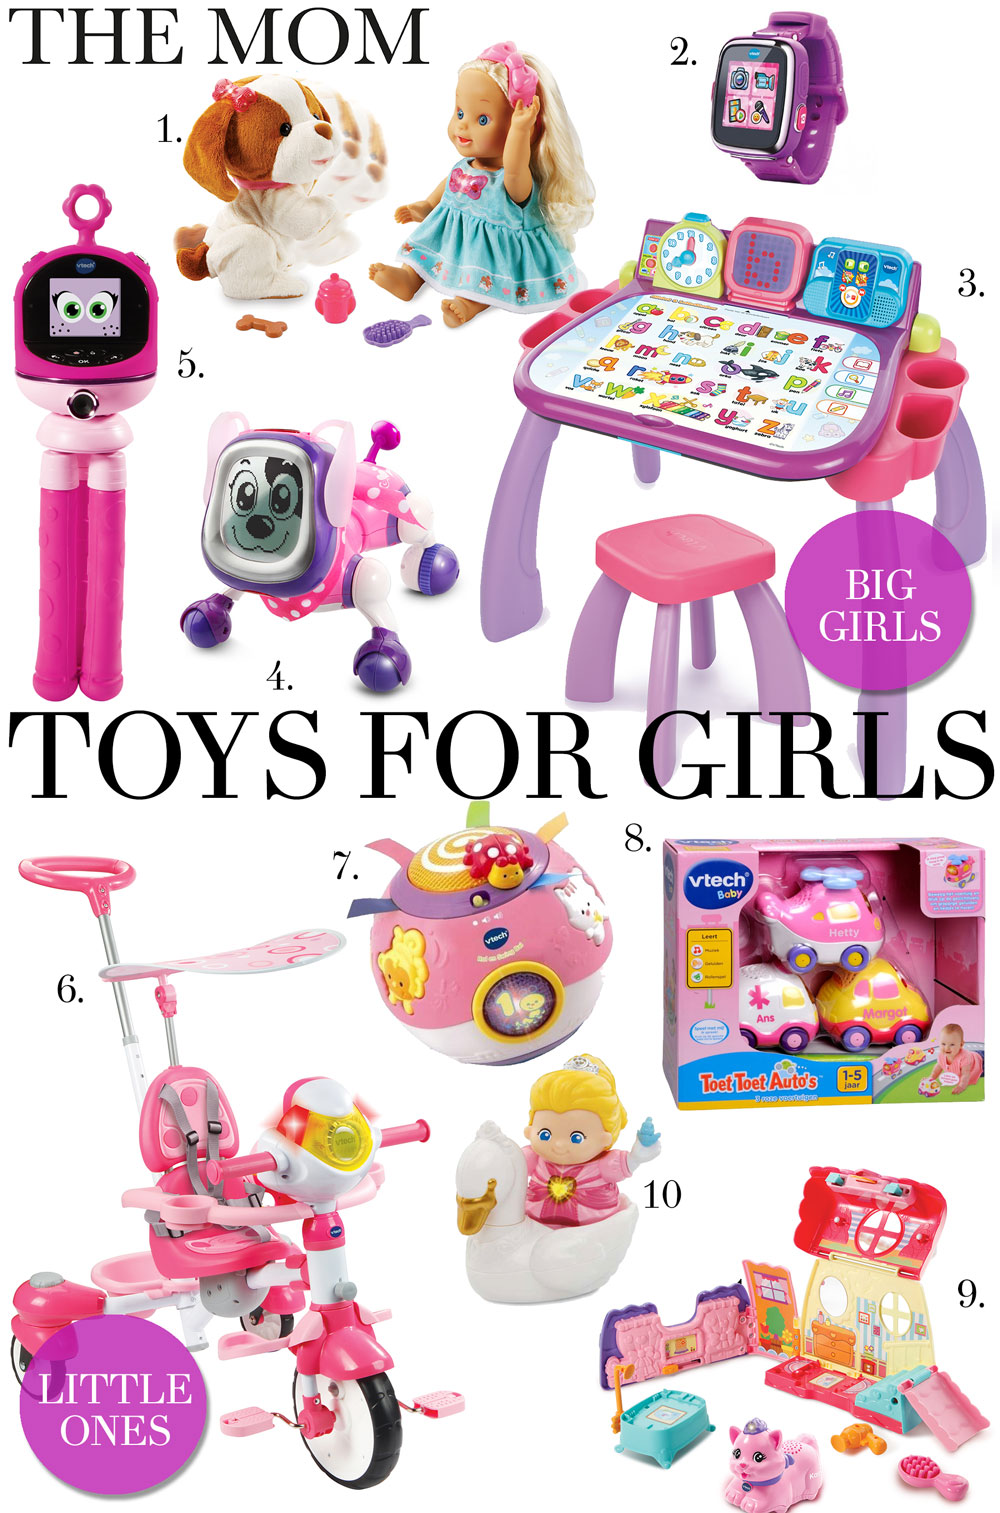 Toys-for-Girls-Vtech-The-Mom